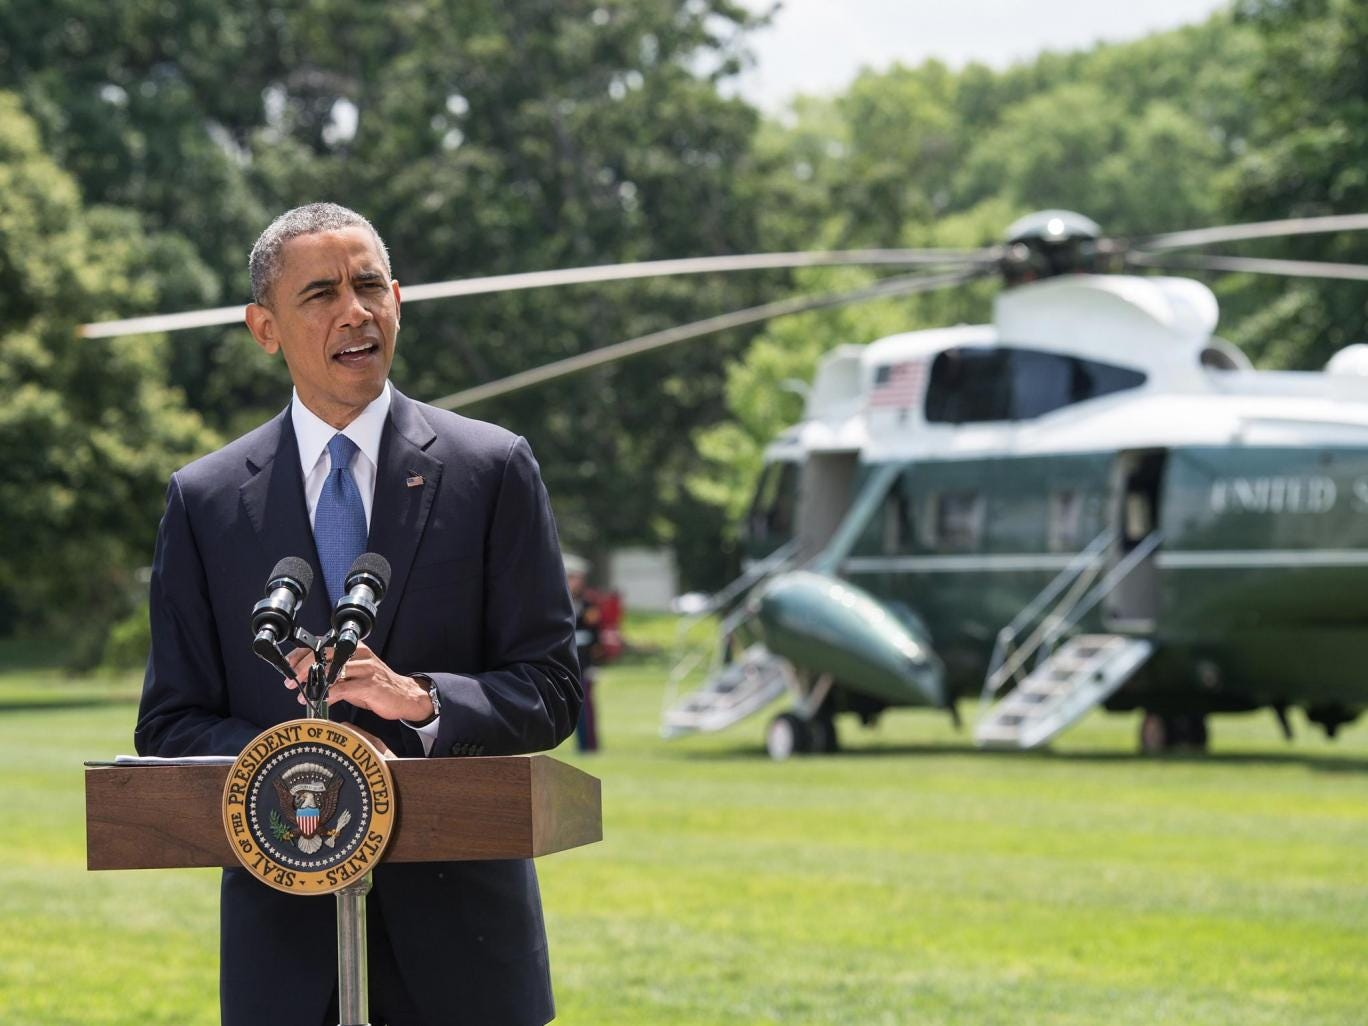 US President Barack Obama makes a statement on Iraq on the South Lawn of the White House